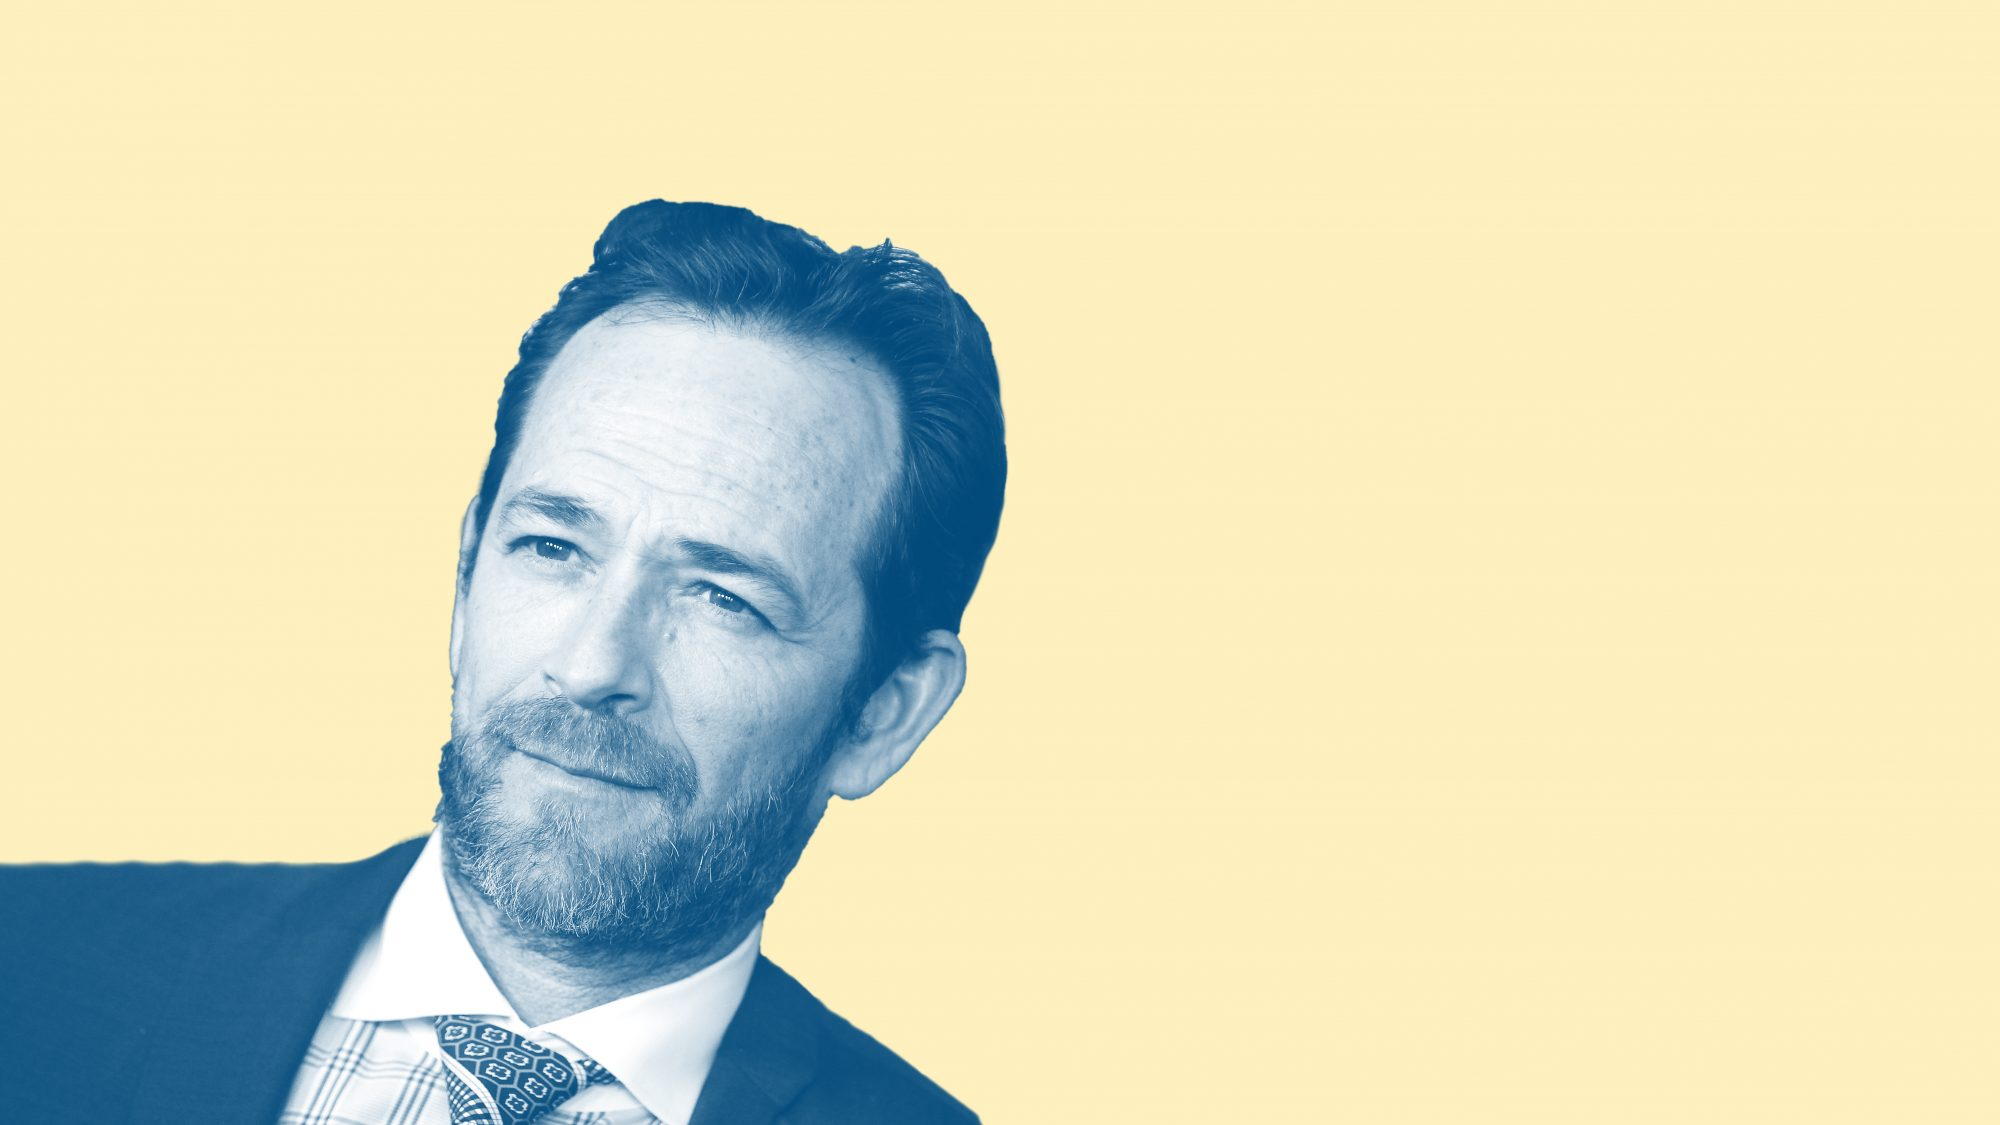 Luke Perry Has Died at age 52 After Suffering a Massive Stroke—Here's What That Means